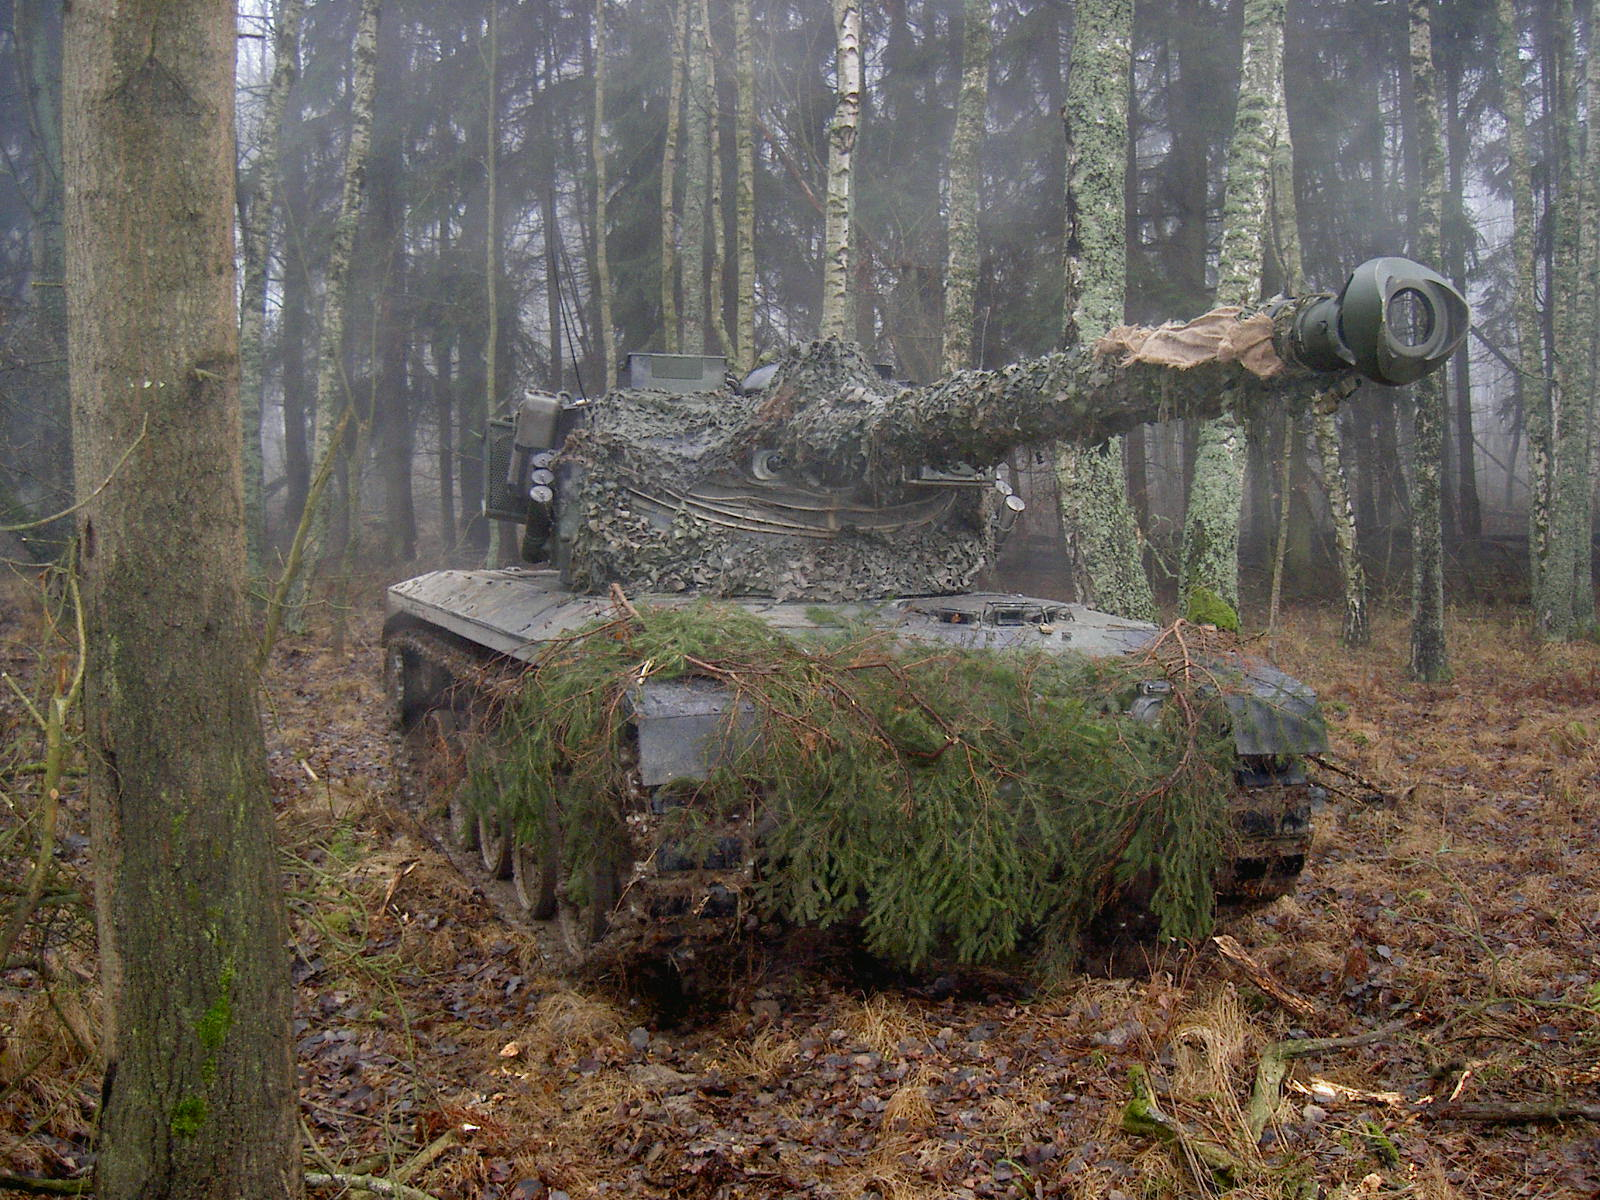 Trees forests tanks armor HD Wallpaper